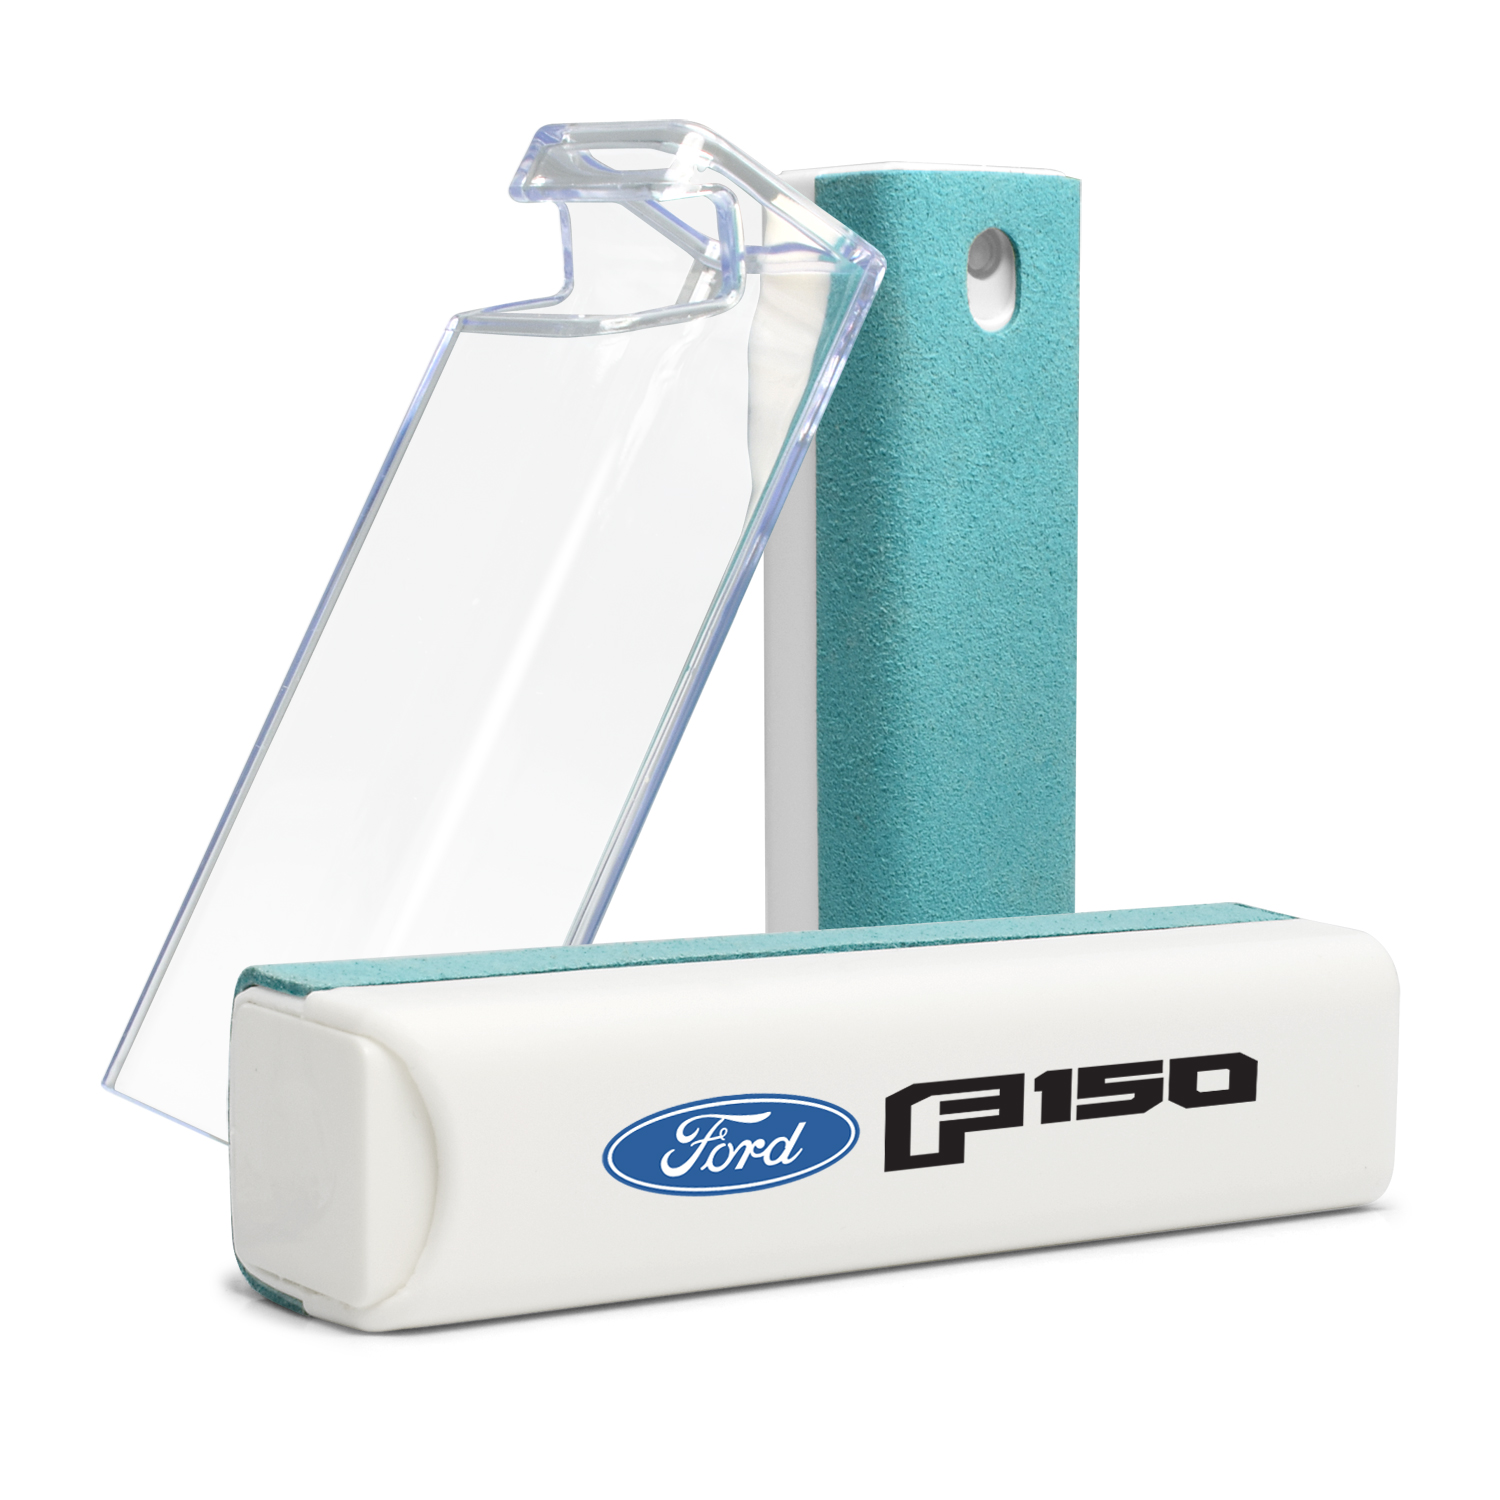 Ford F-150 New Blue Microfiber Screen Cleaner for Car Navigation, Cell Phone